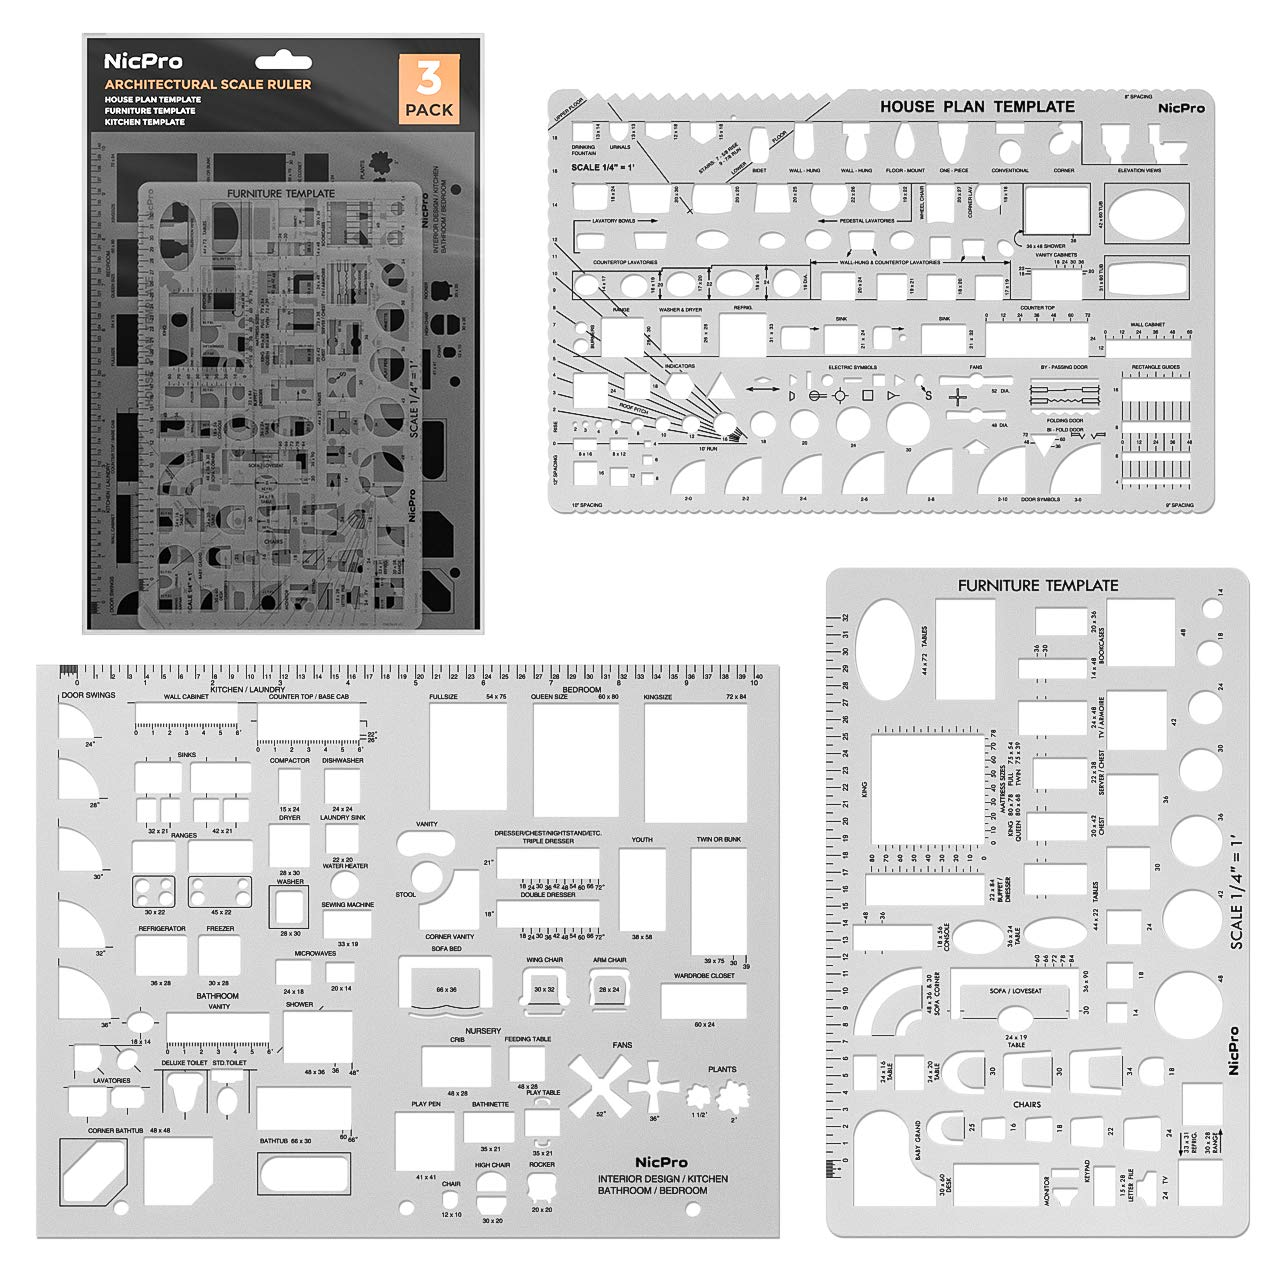 Nicpro Plastic Drafting Tools Architectural Templates, 3 PSC Geometry Template for CAD Drawing House Plan Furniture Kitchen, Building, Interior Design Tools Ruler Shapes